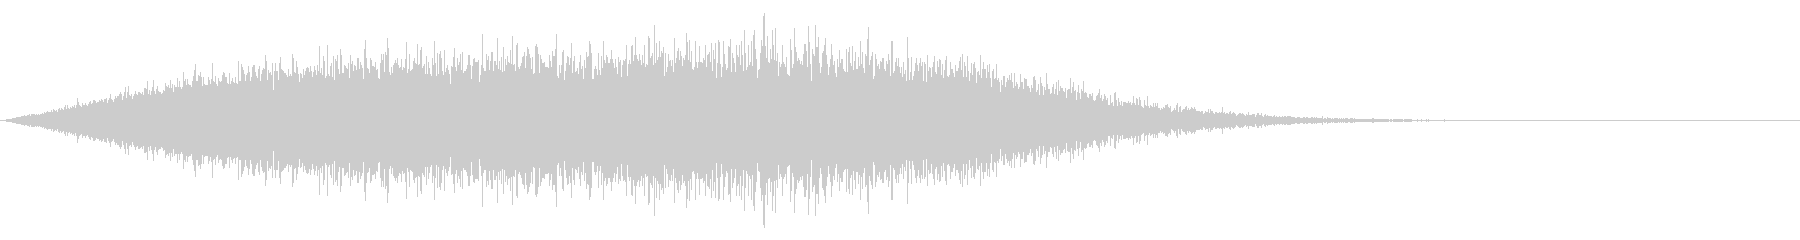 Sounds of chanting and activating magic # 10's unreproduced waveform